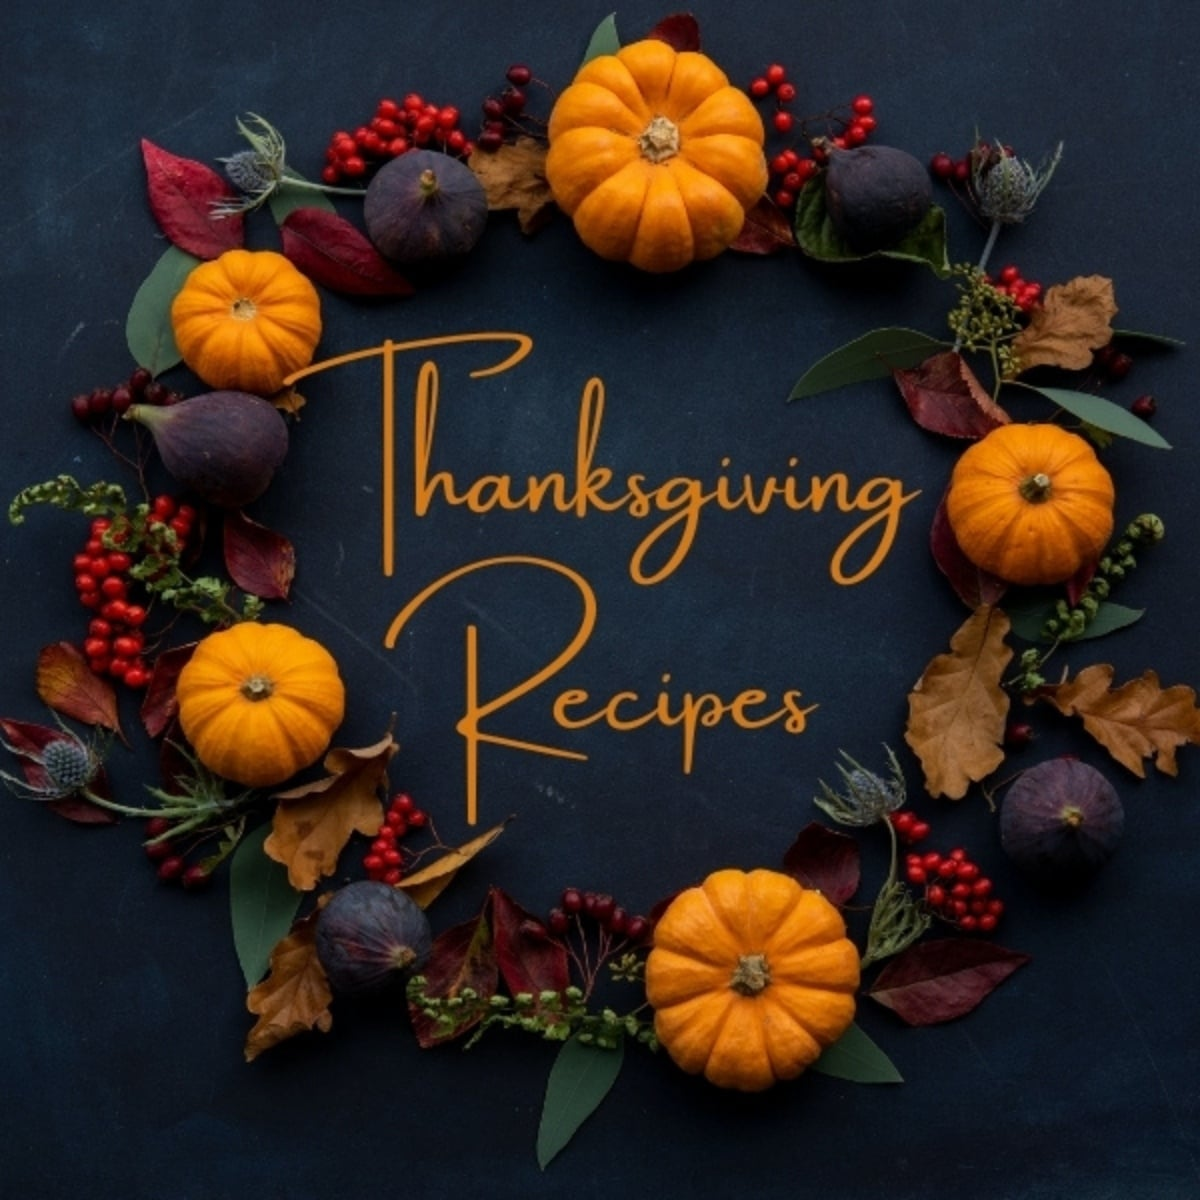 thanksgiving wreath on a black background with the text Thanksgiving Recipes